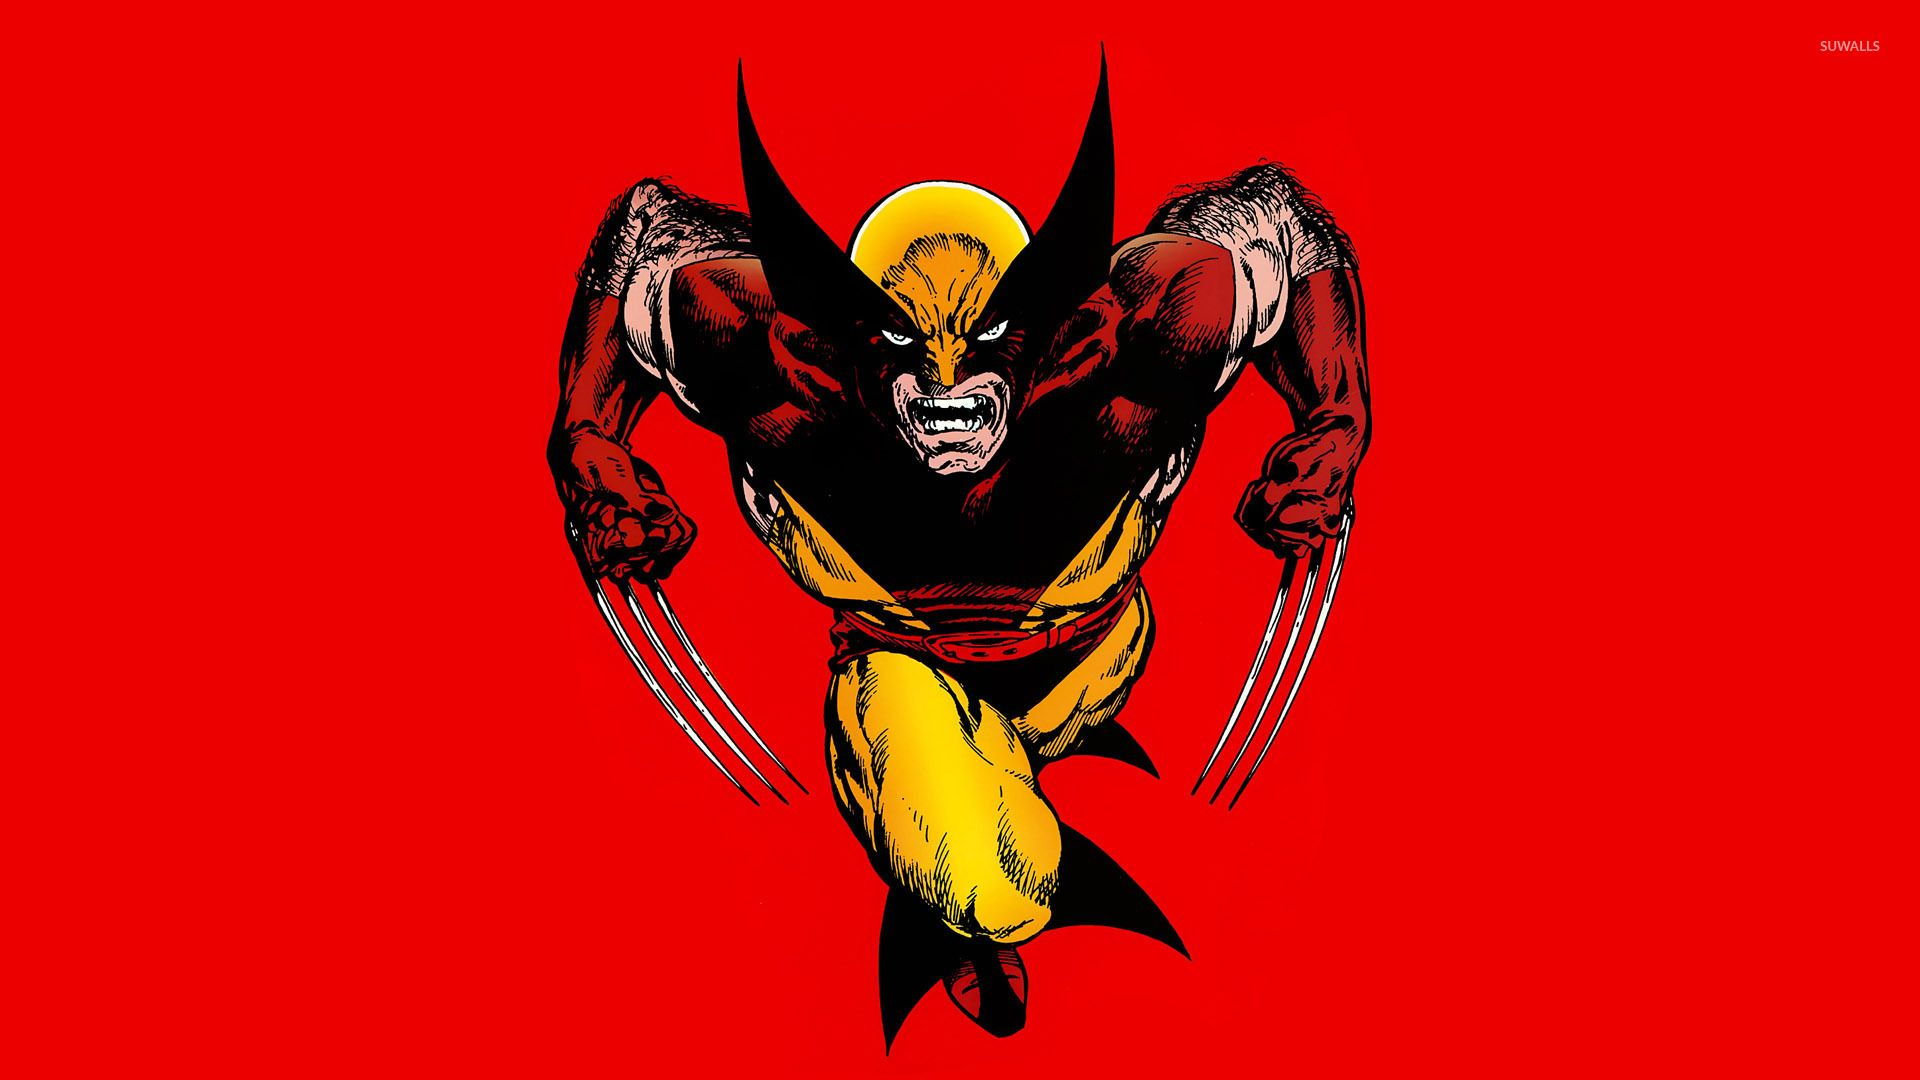 1920x1080 Wolverine in a fight wallpaper - Comic wallpapers - #49633